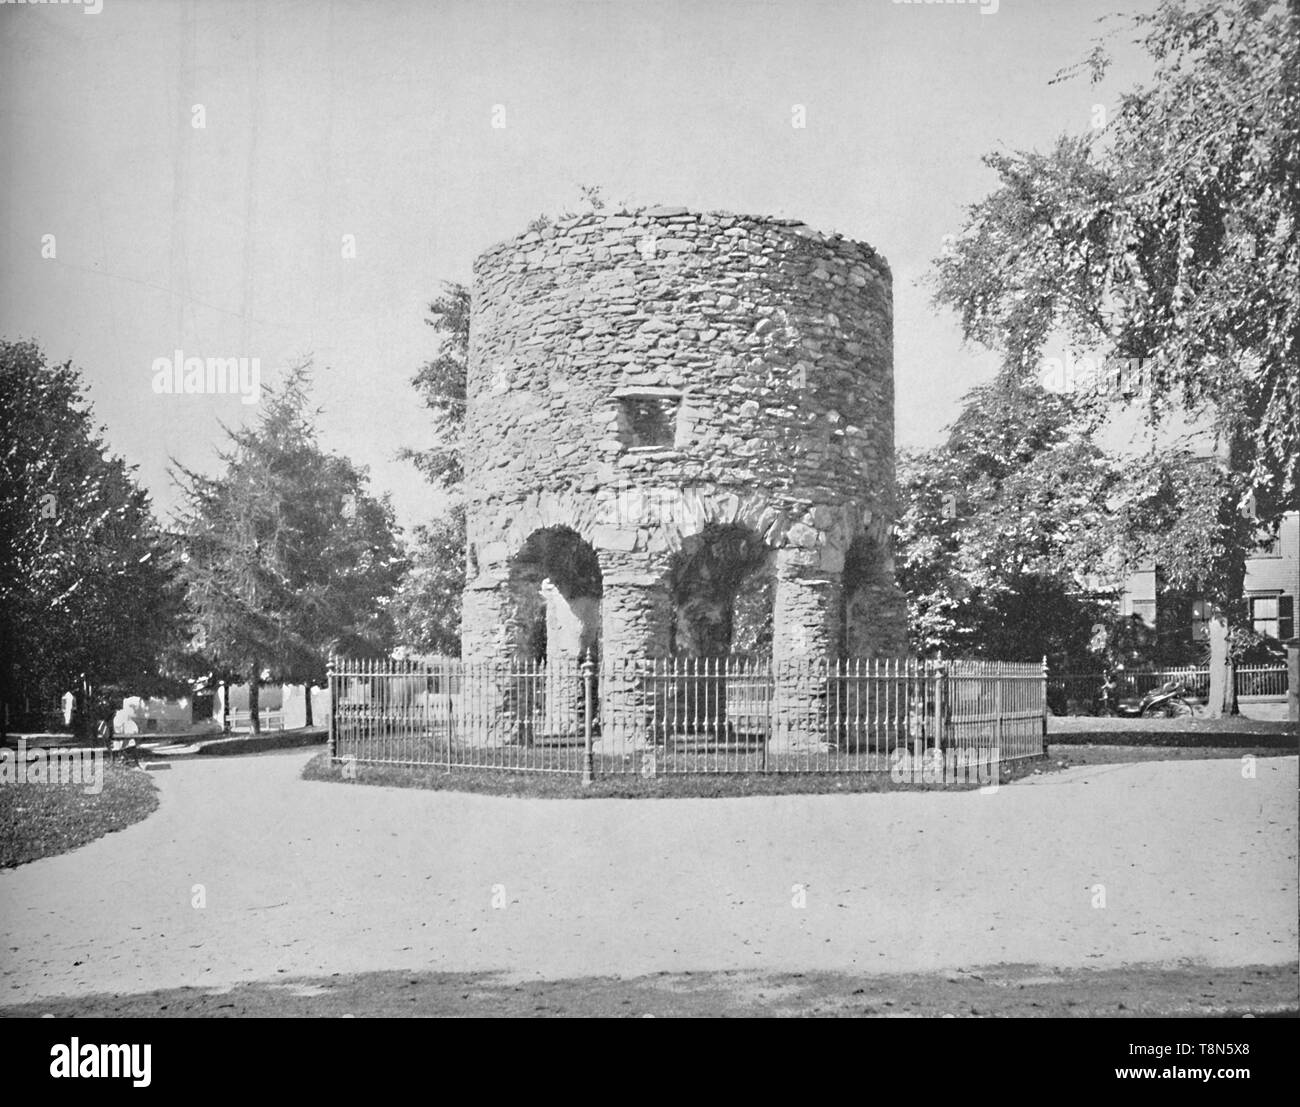 """'The Old Norse, Tower, Newport, R.I.', c1897. Newport Tower in Touro Park, Newport, Rhode Island is the remains of a windmill built in mid-17th century. From """"A Tour Through the New World America"""", by Prof. Geo. R. Cromwell. [C. N. Greig & Co., London, c1897] - Stock Image"""